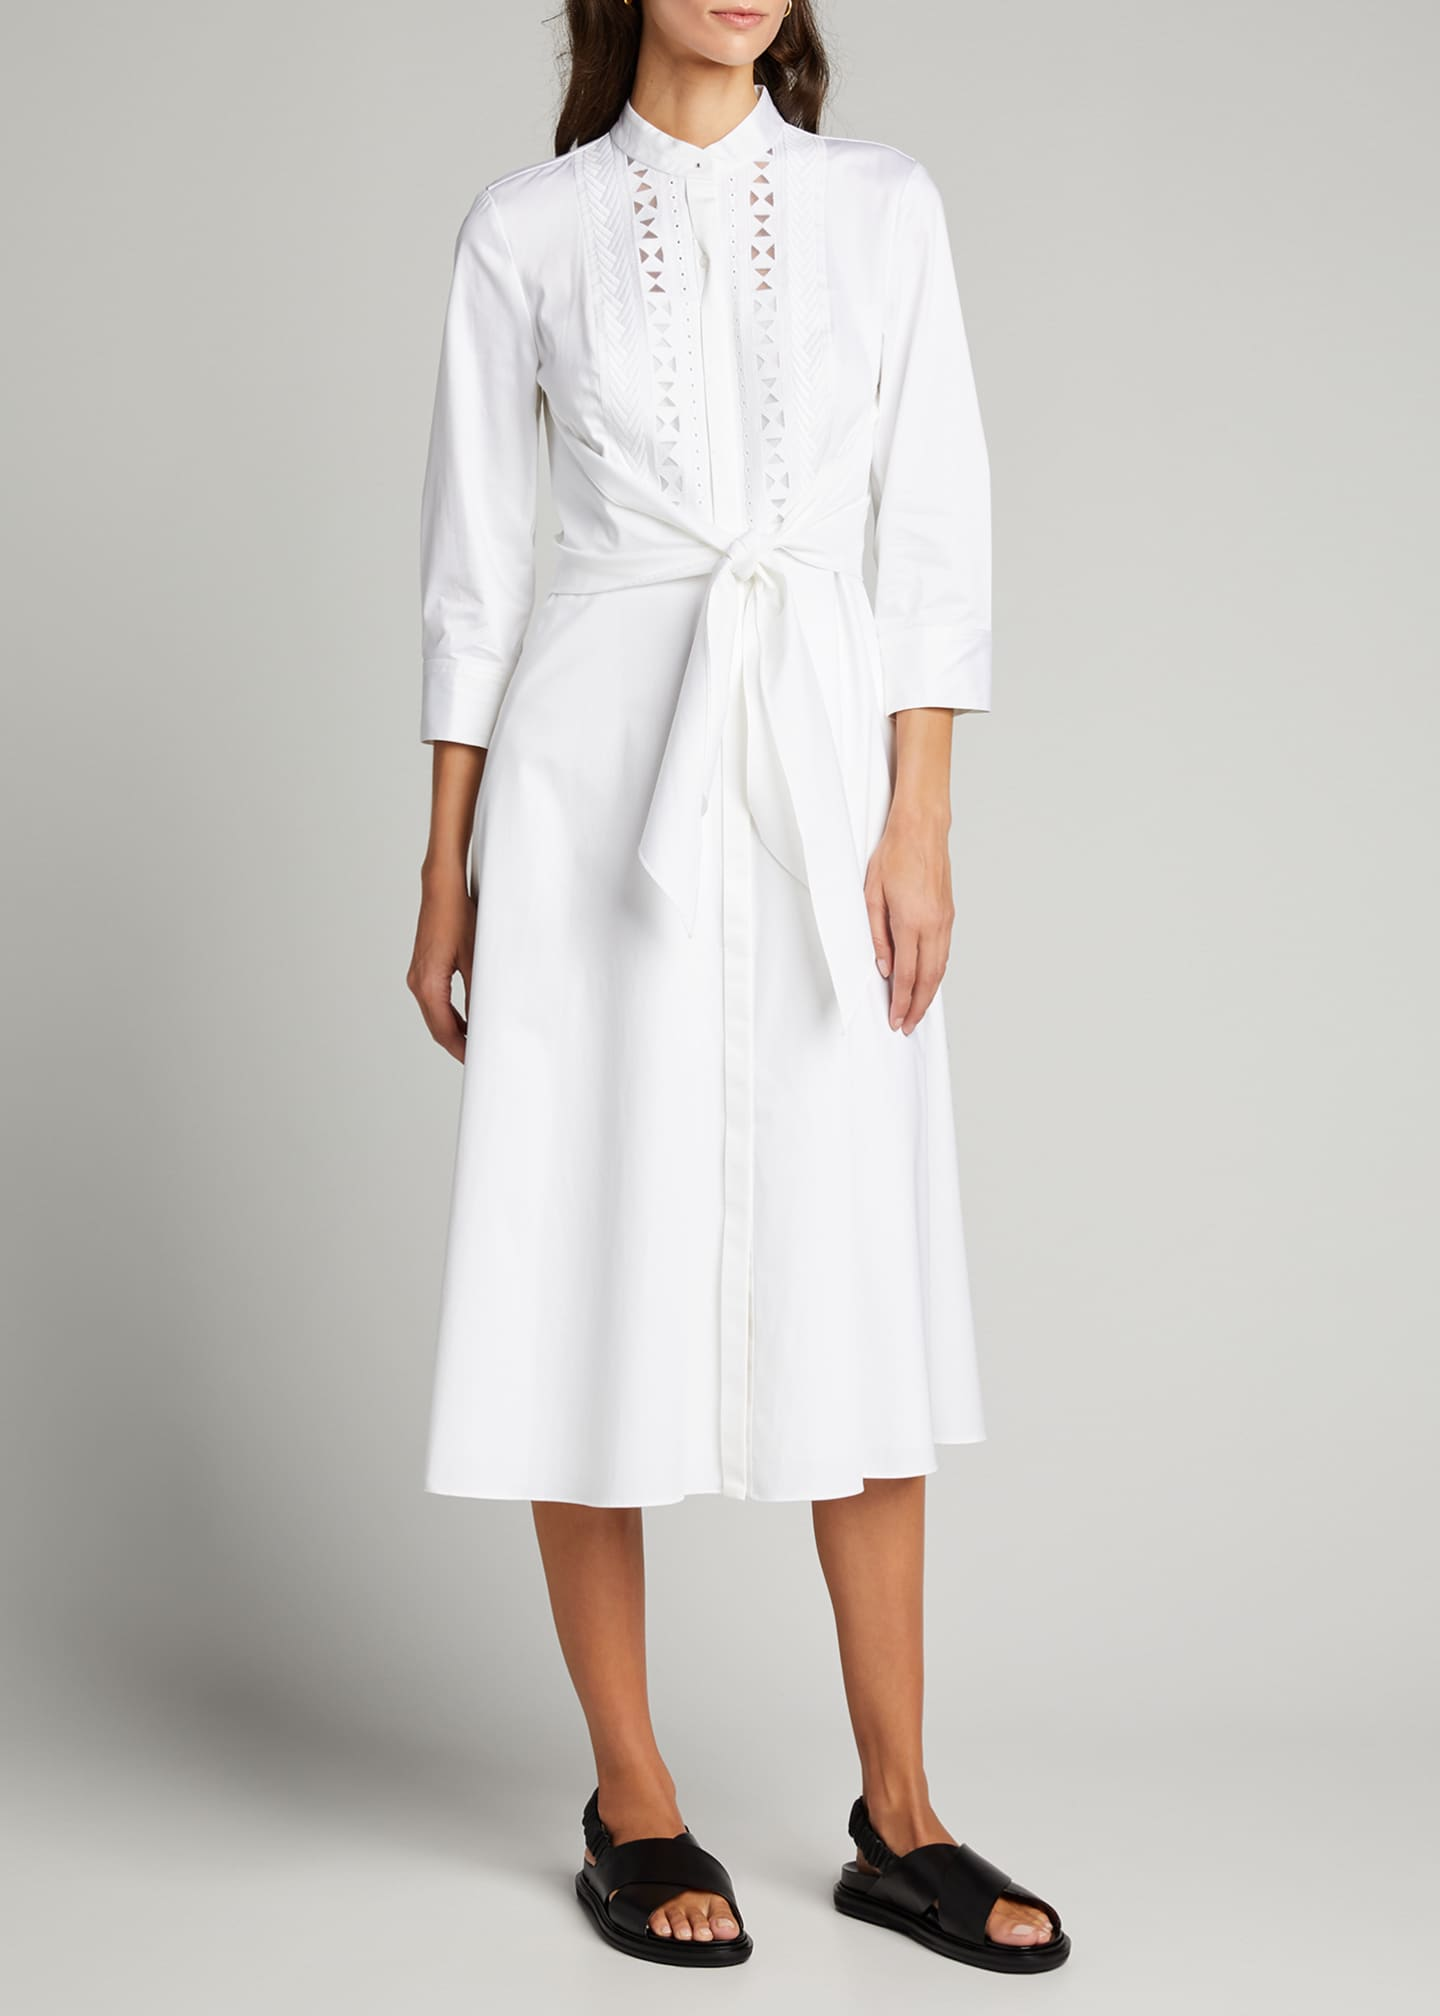 Image 3 of 5: Ann 3/4-Sleeve Tie-Waist Midi Dress